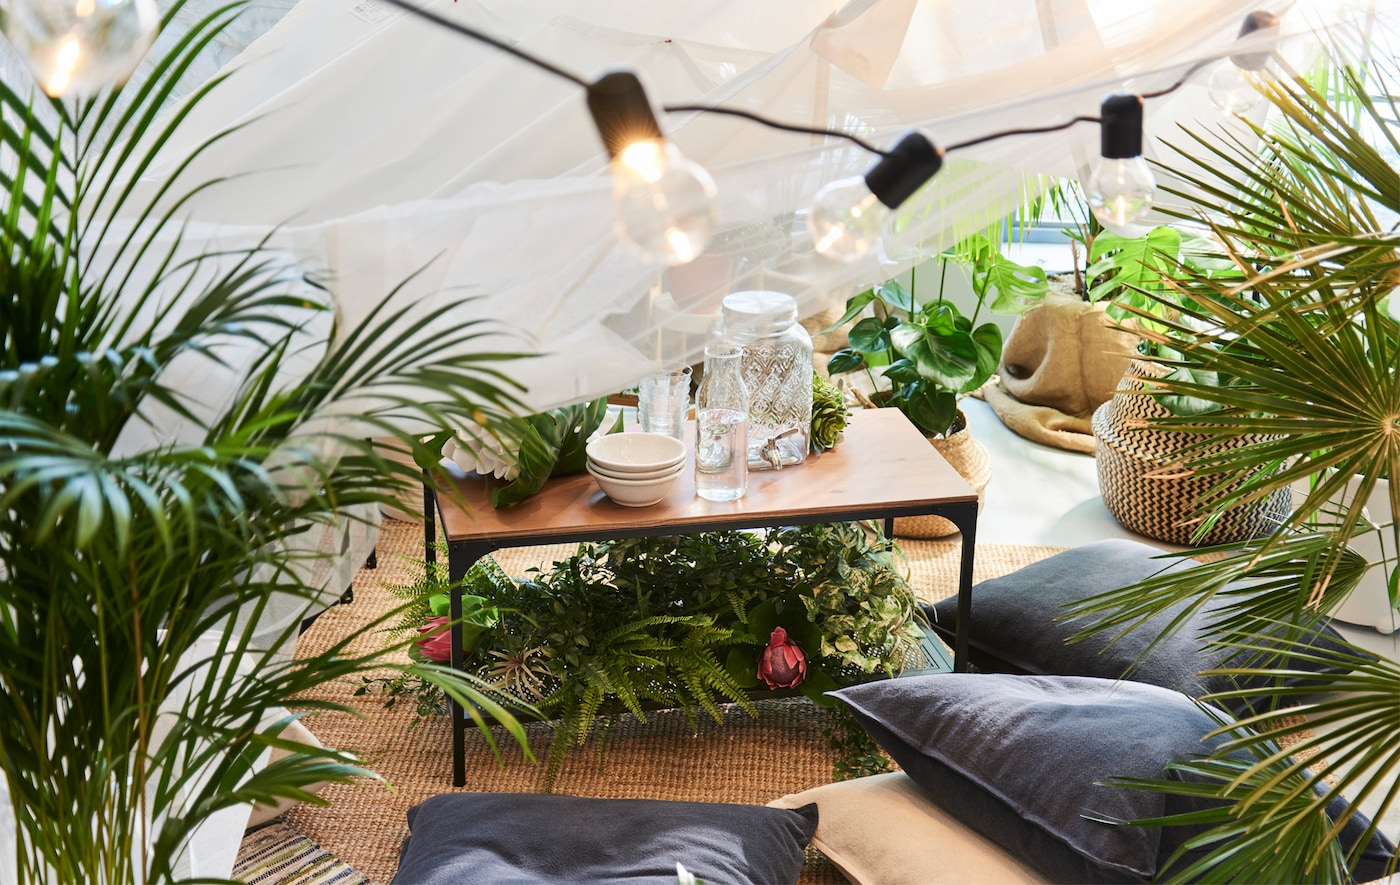 Create a summer picnic indoors. Gather together some friends around a coffee table and let them sit on a cosy rug. IKEA has several coffee tables such as IKEA FJÄLLBO coffee table in black metal and solid wood.